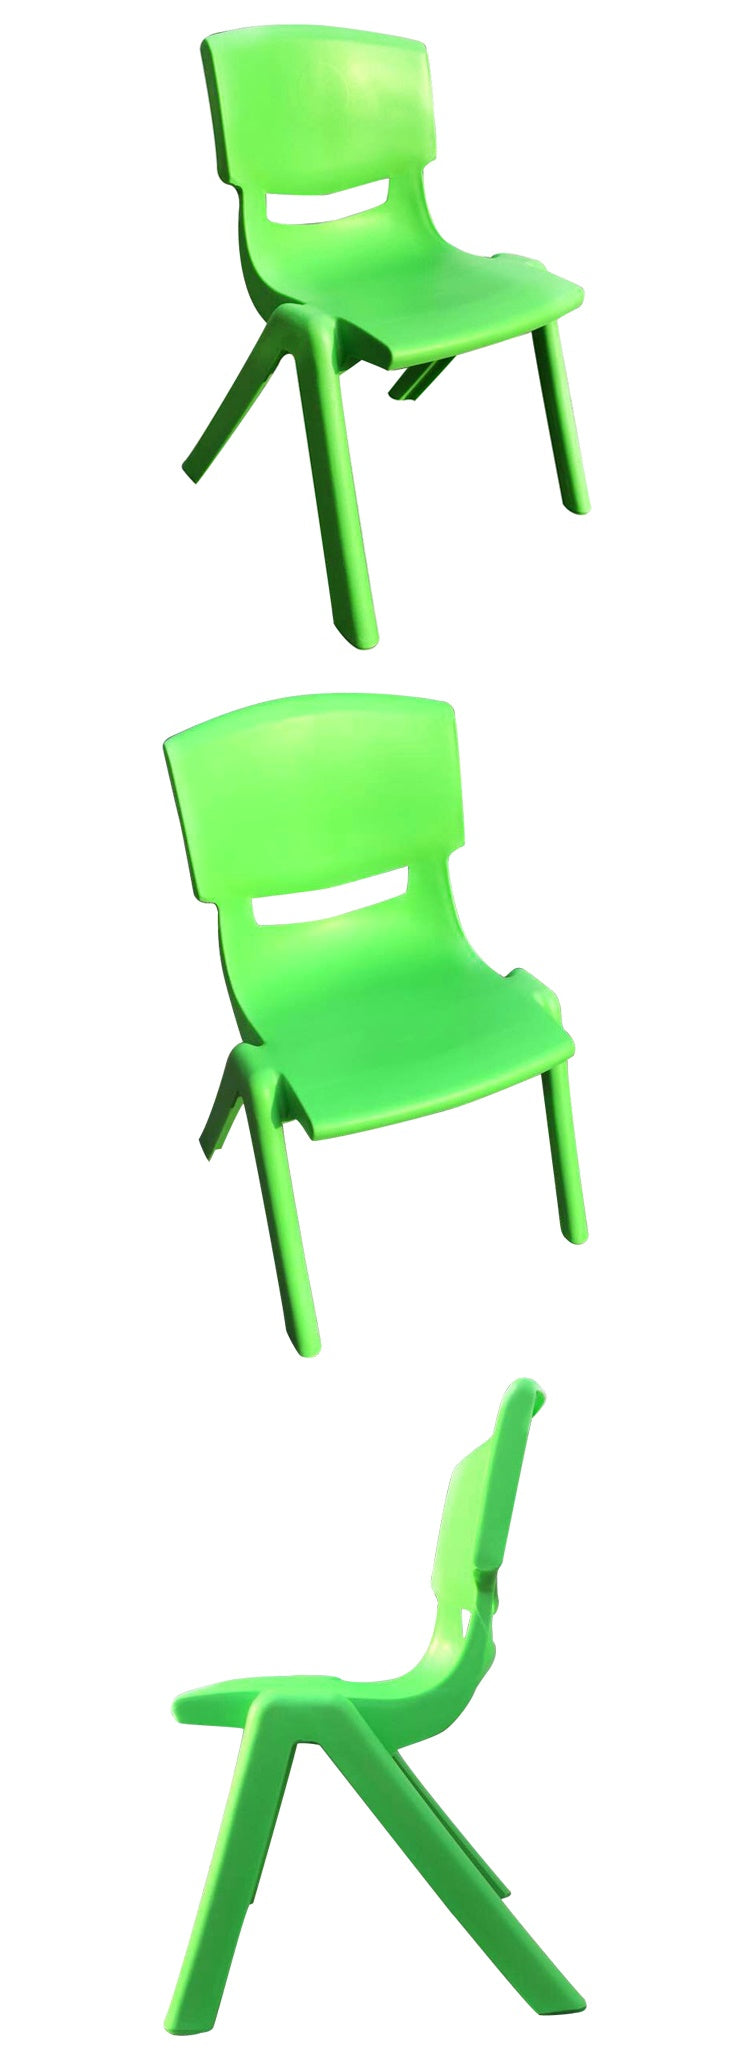 SET OF 4 GREEN CHILDRENS CHAIRS FOR CHILDRENS TABLE HOLDS UP TO 100KG